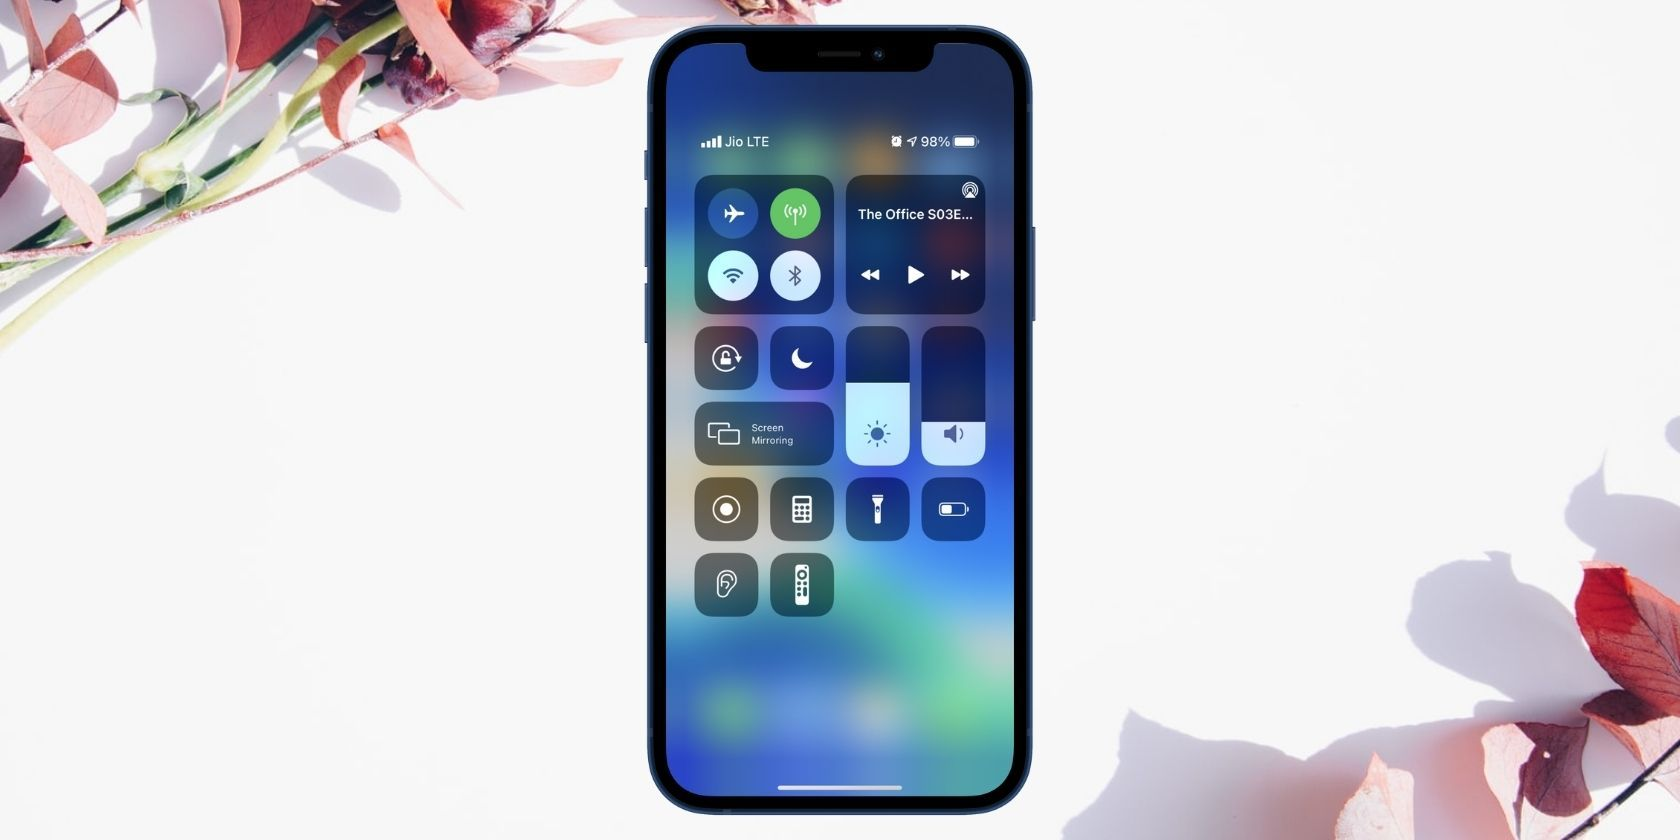 How to Open, Use, and Customize Control Center on iPhone